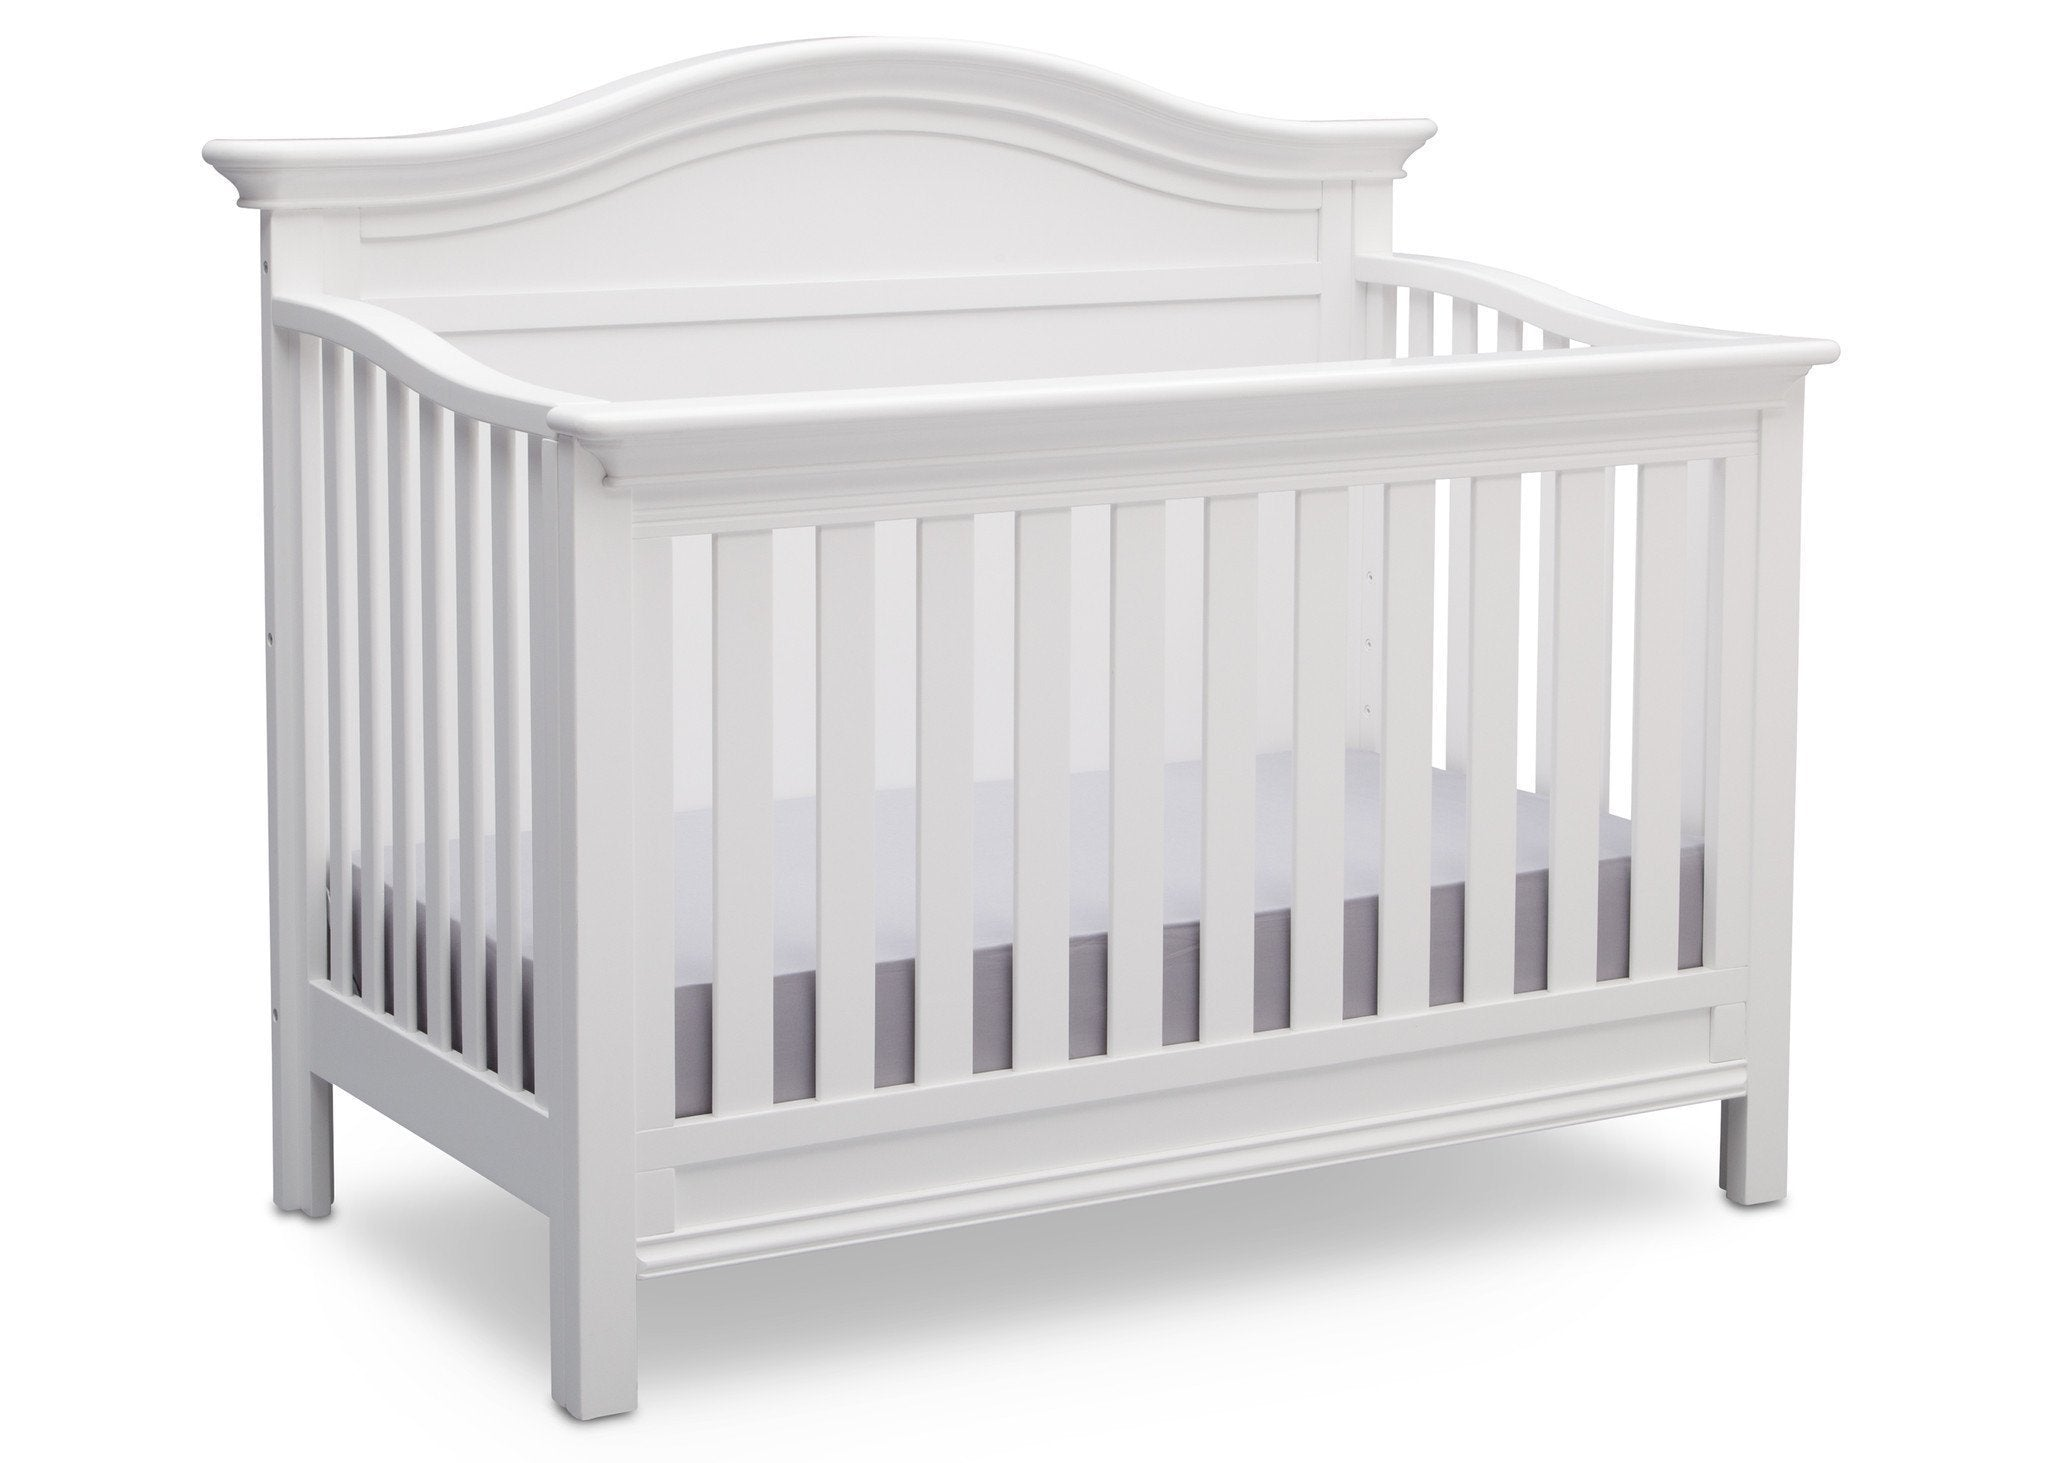 Serta Bianca White (130) Bethpage 4-in-1 Crib, Side View with Crib Conversion b4b